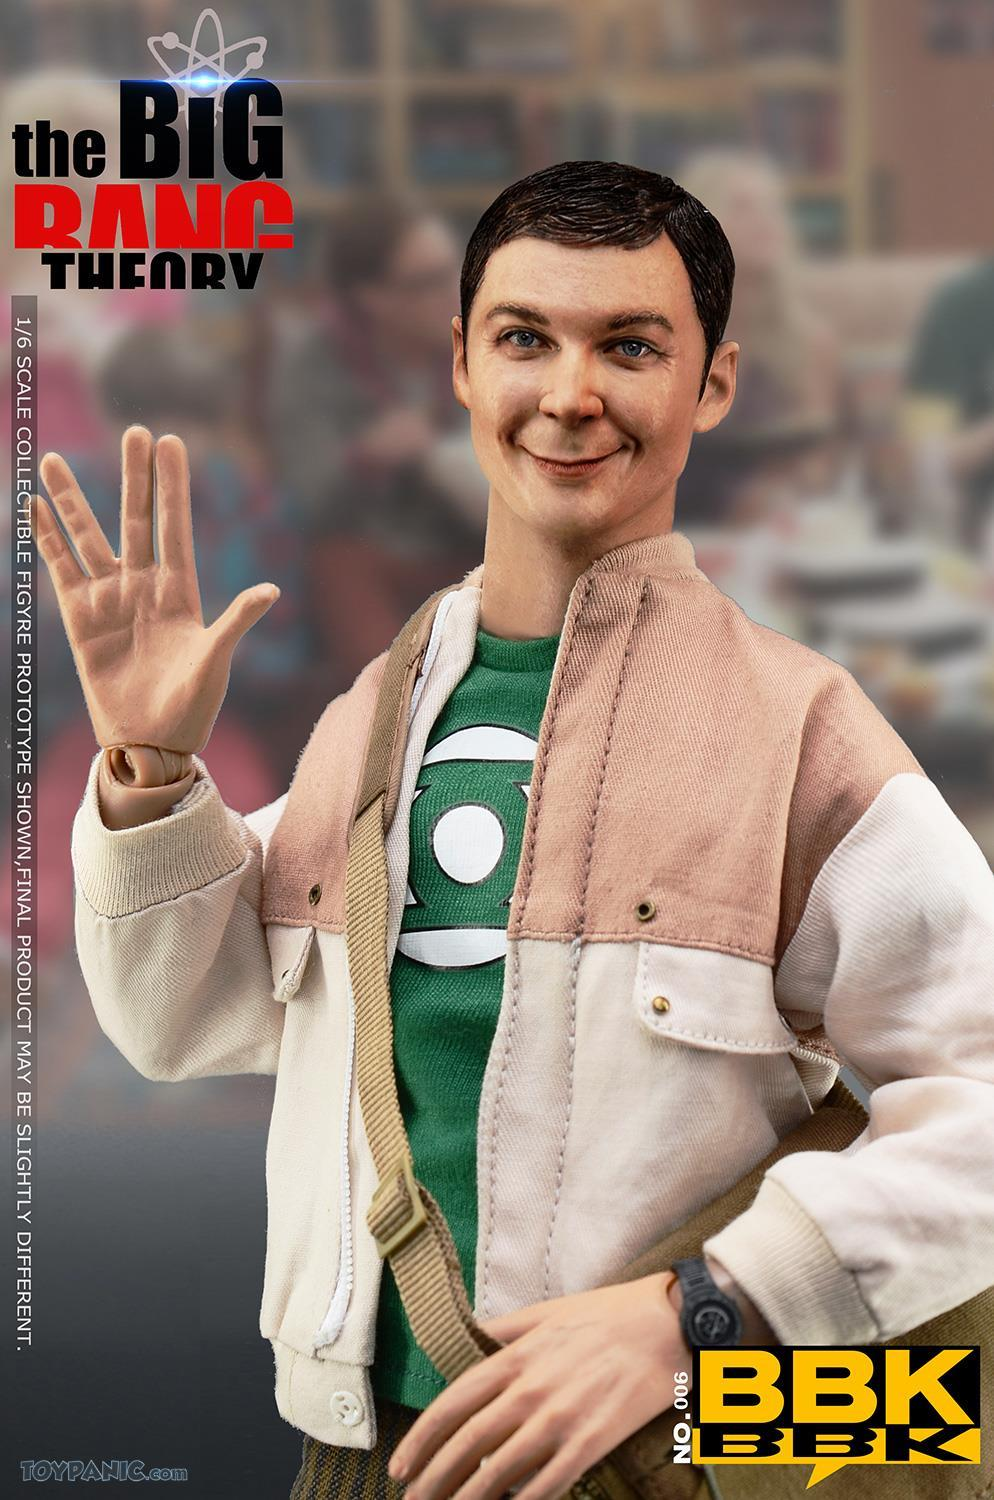 bbk - NEW PRODUCT: BBK: 1/6 scale The Big Bang Theory Sheldon Cooper Action Figure (BBK06) 49201914